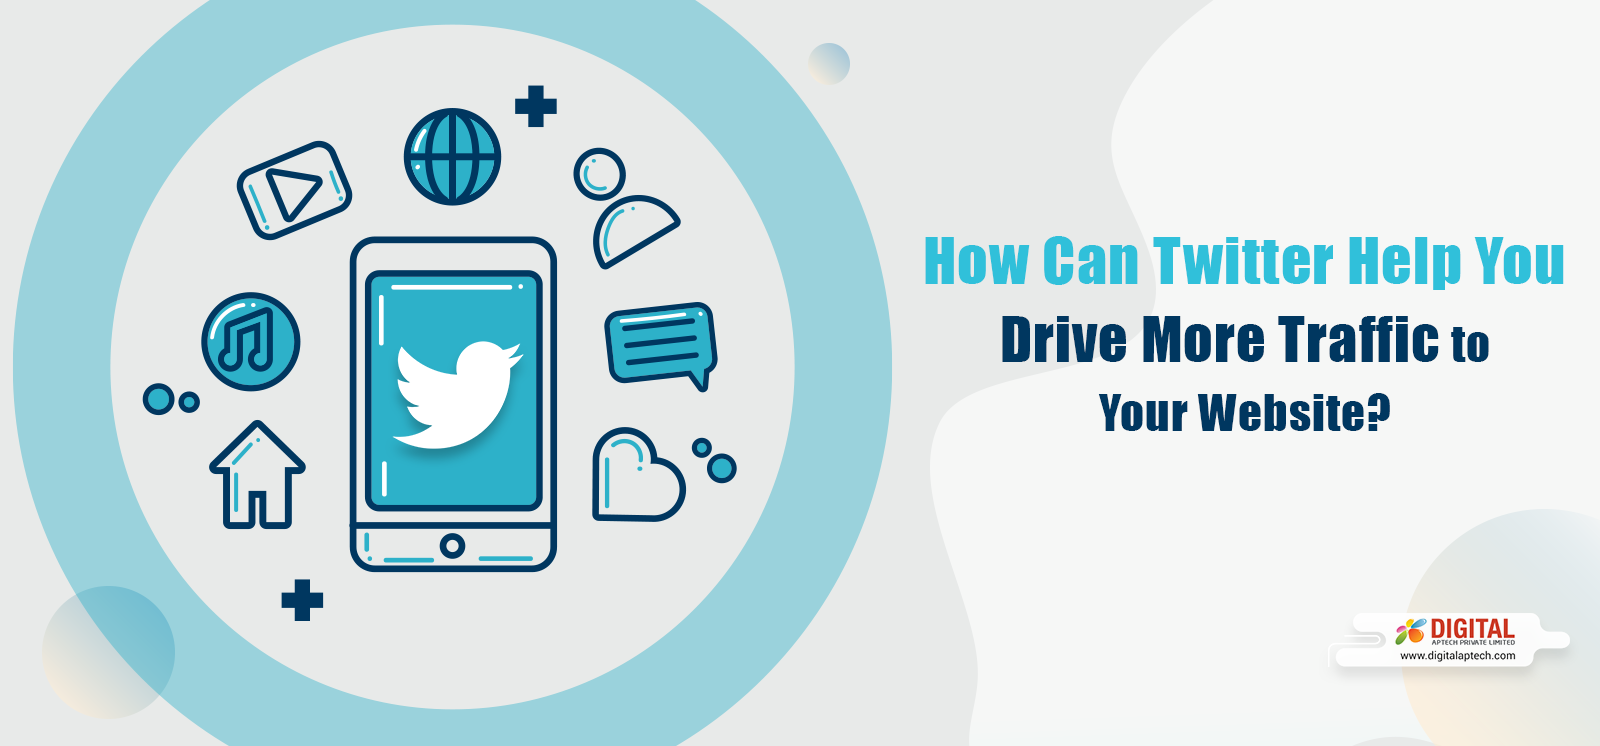 How Can Twitter Help You Drive More Traffic to Your Website?